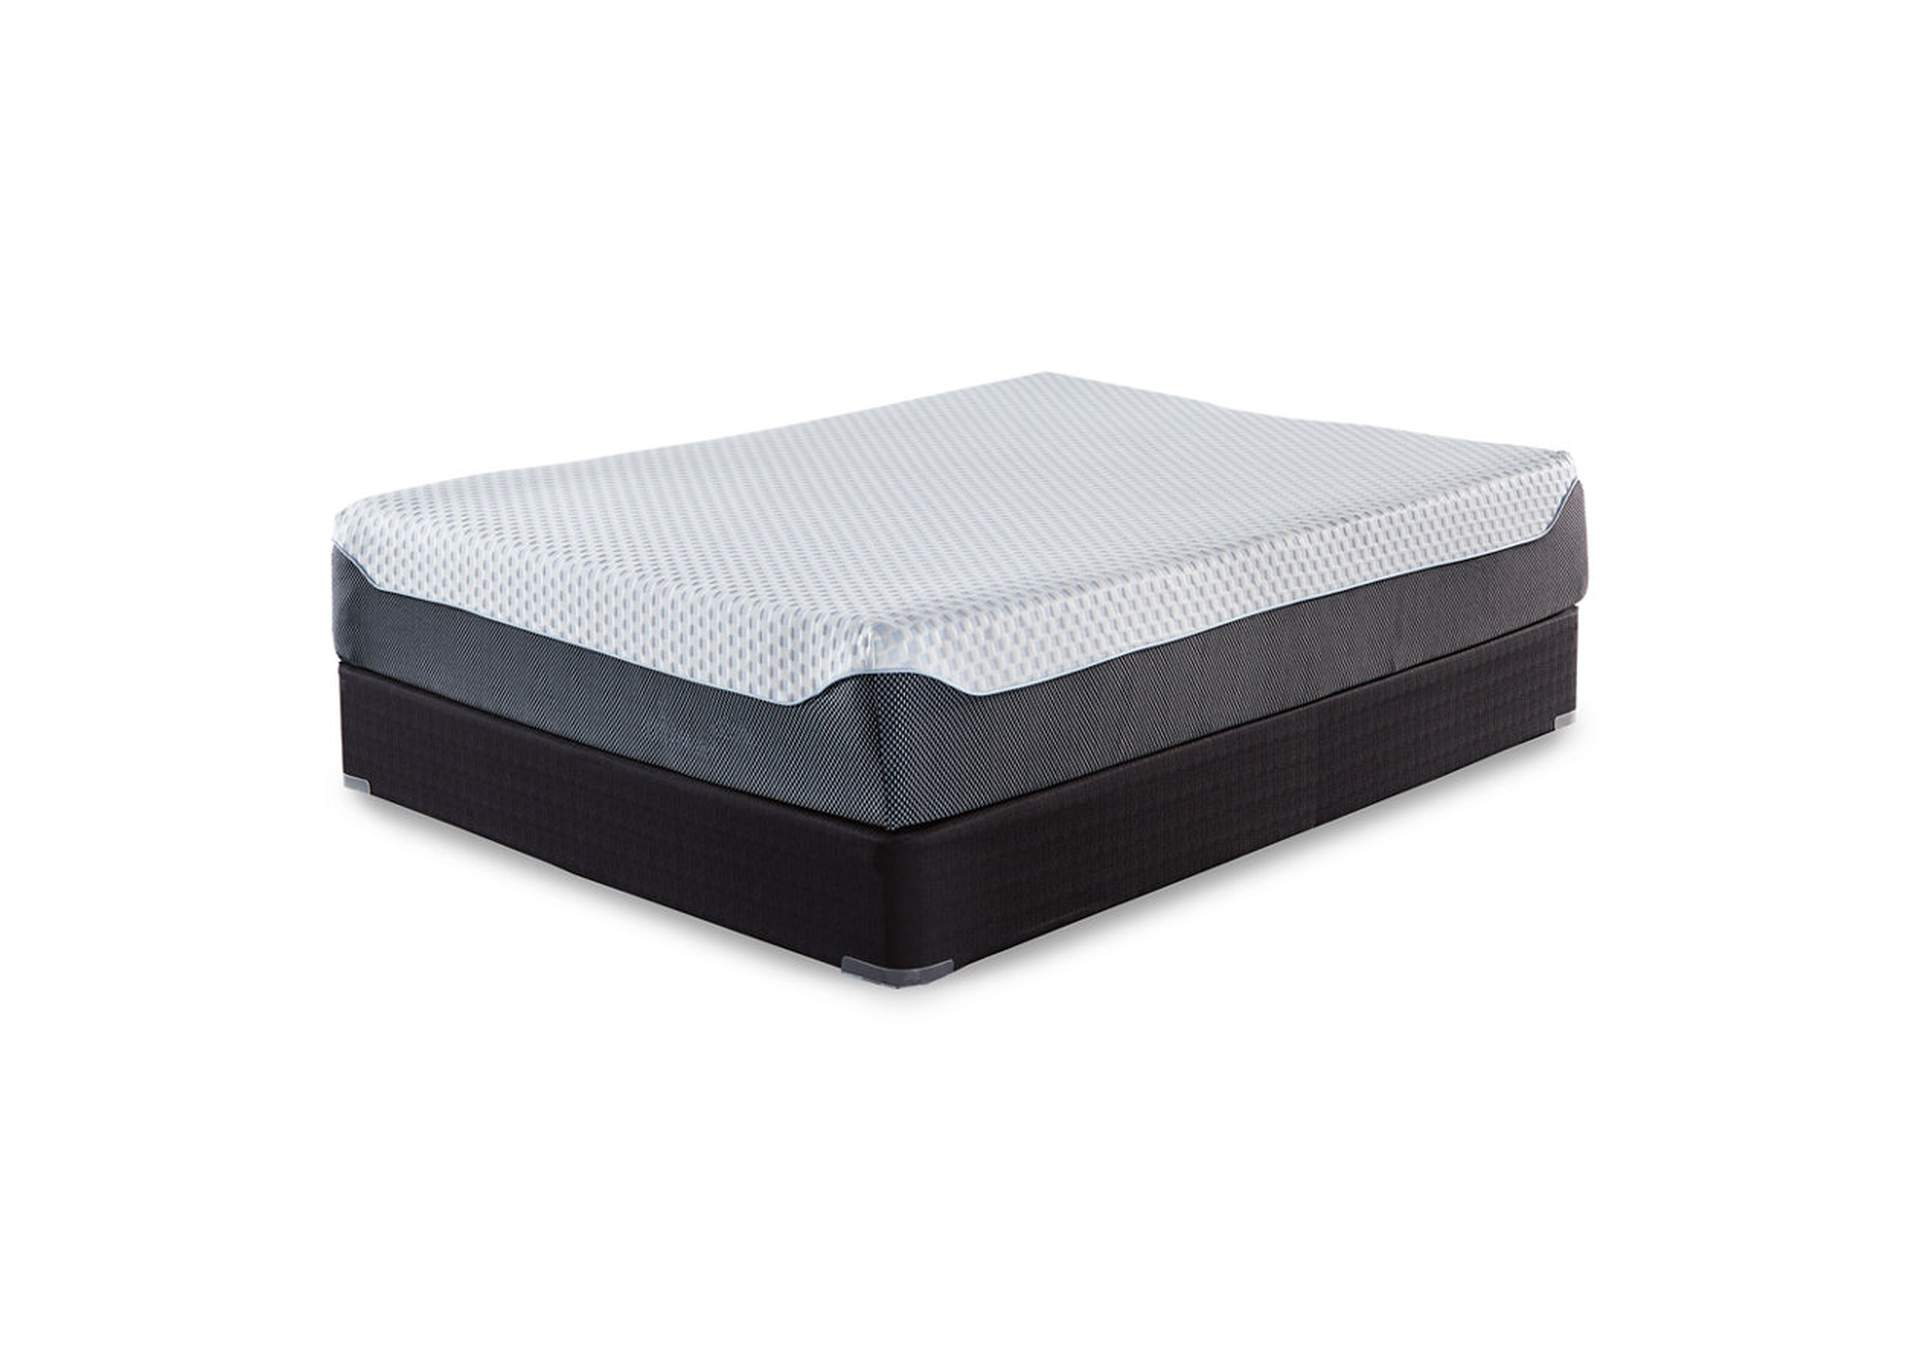 12 Inch Chime Elite Twin Memory Foam Mattress in a box w/Foundation,Sierra Sleep by Ashley